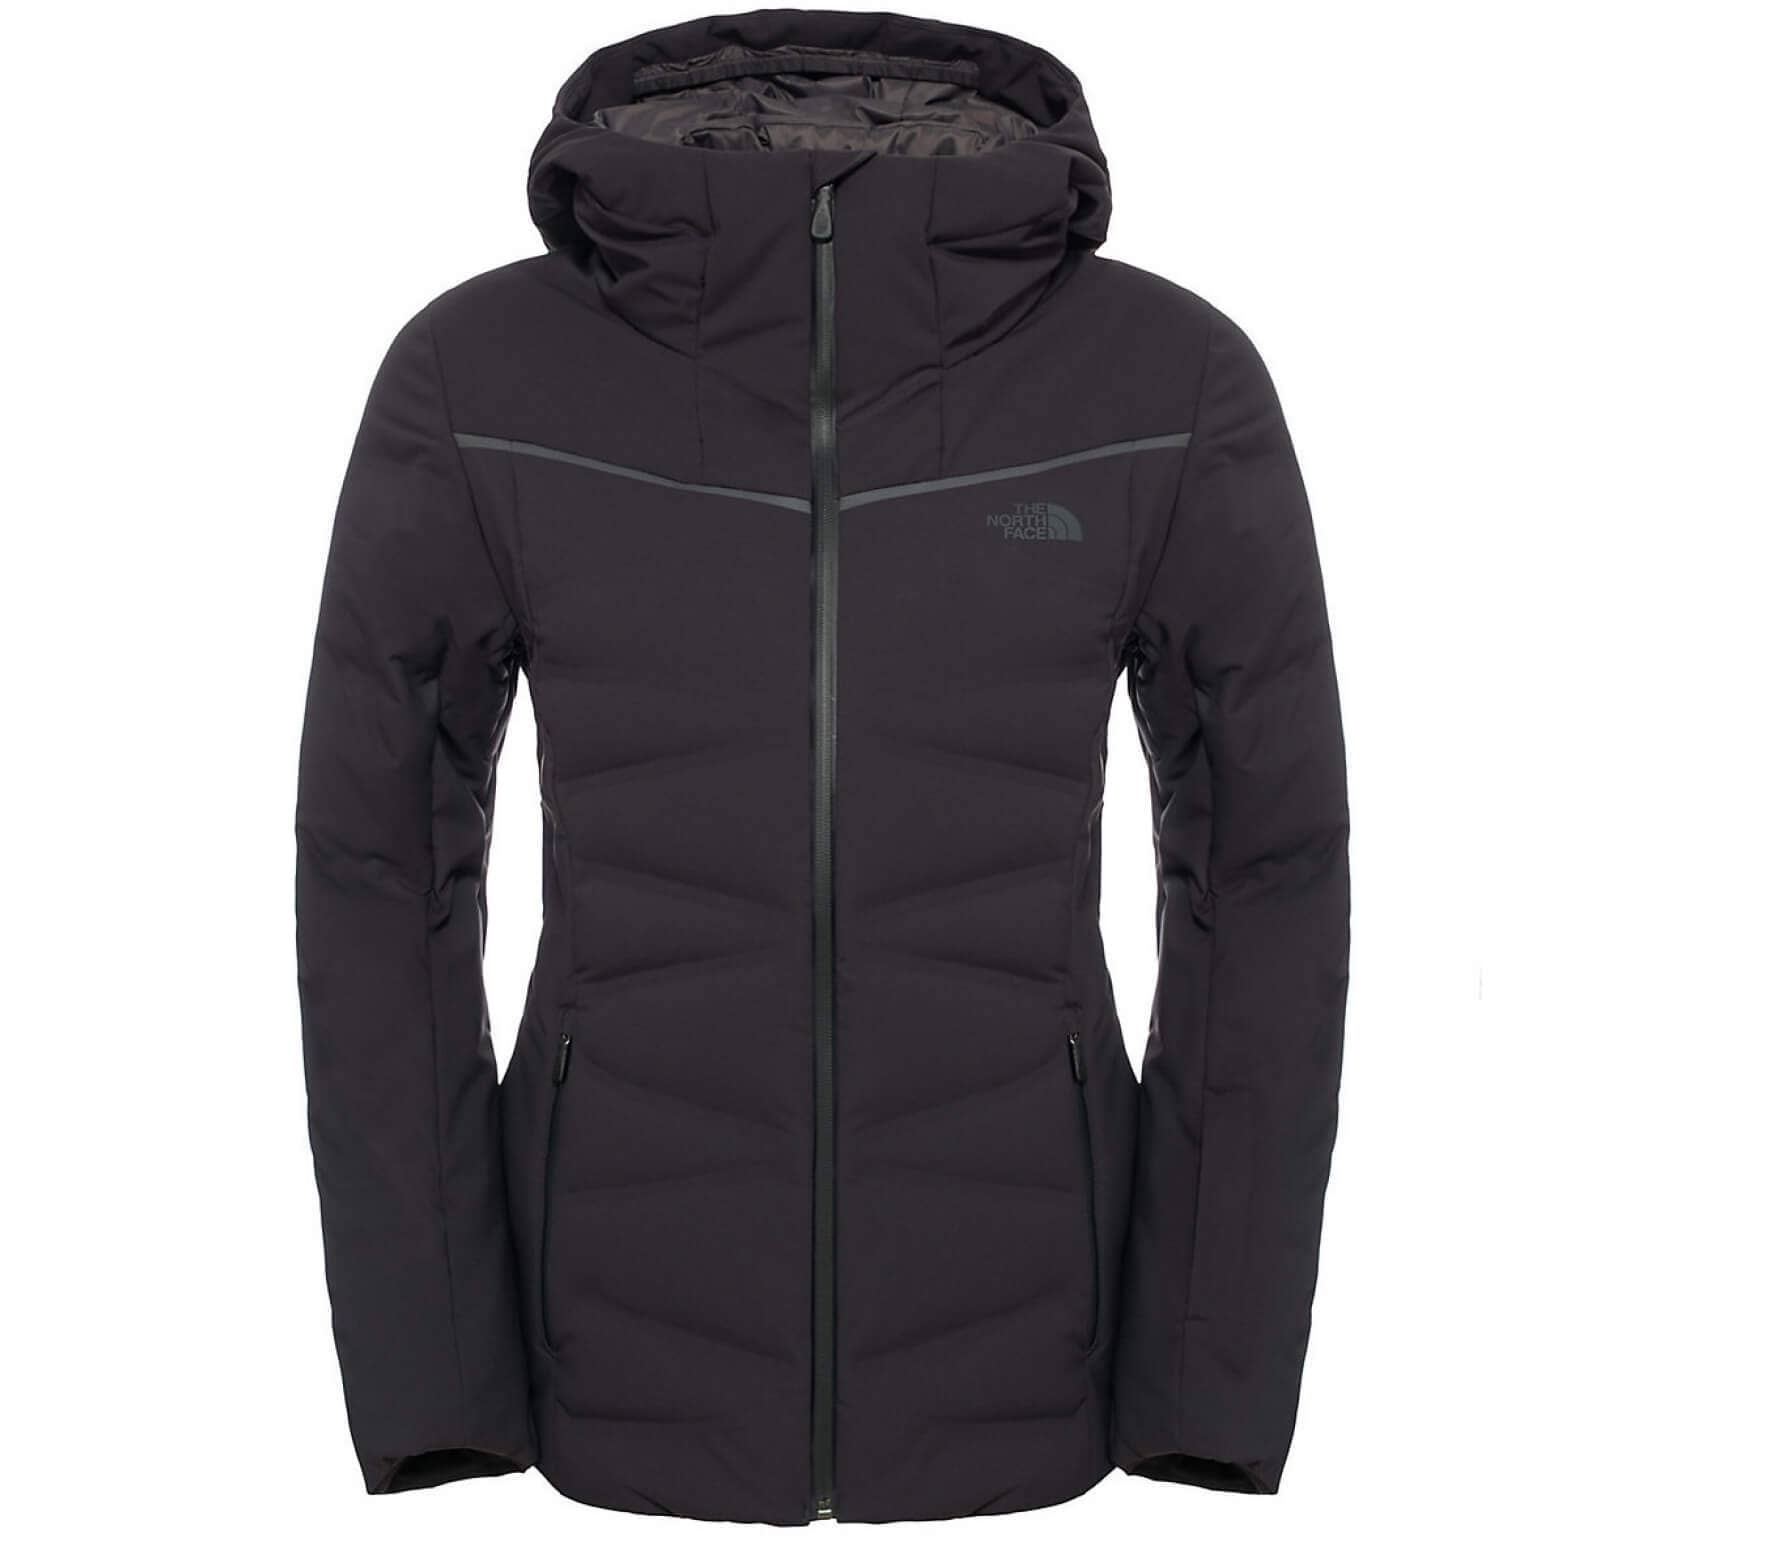 12af7a3150 ... promo code 35d65 28ca6 The North Face - Charlanon Down womens down ski  jacket (black ...